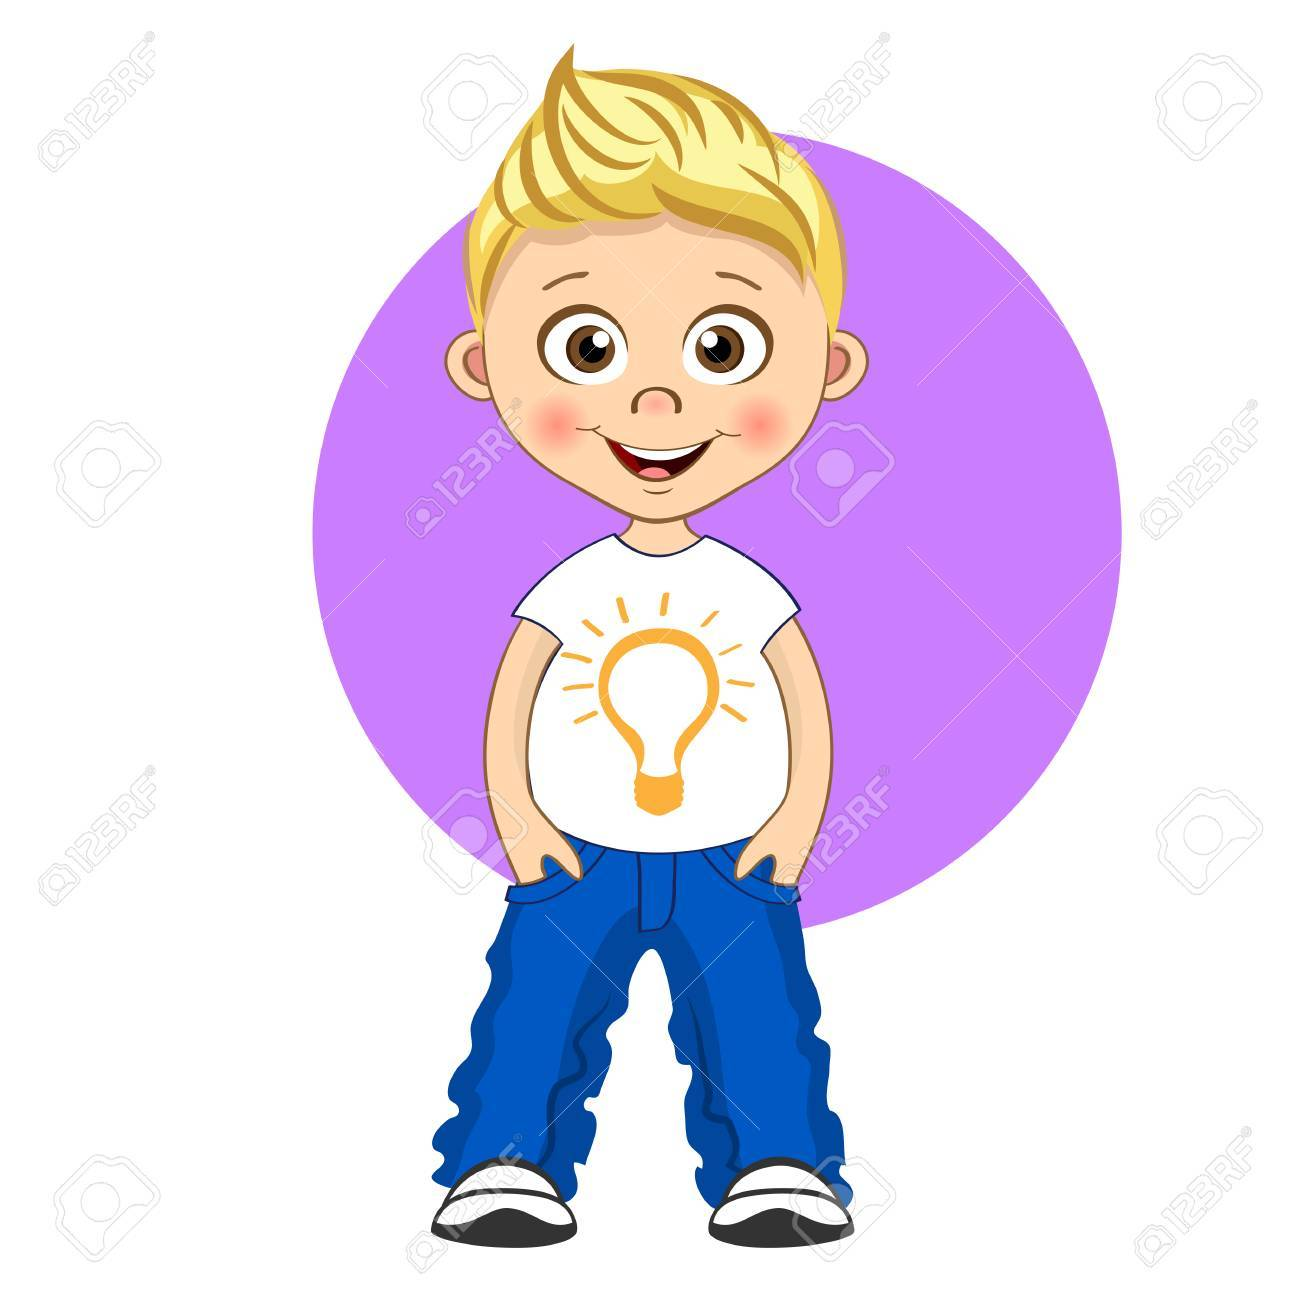 Cool boy with blonde hair in T.